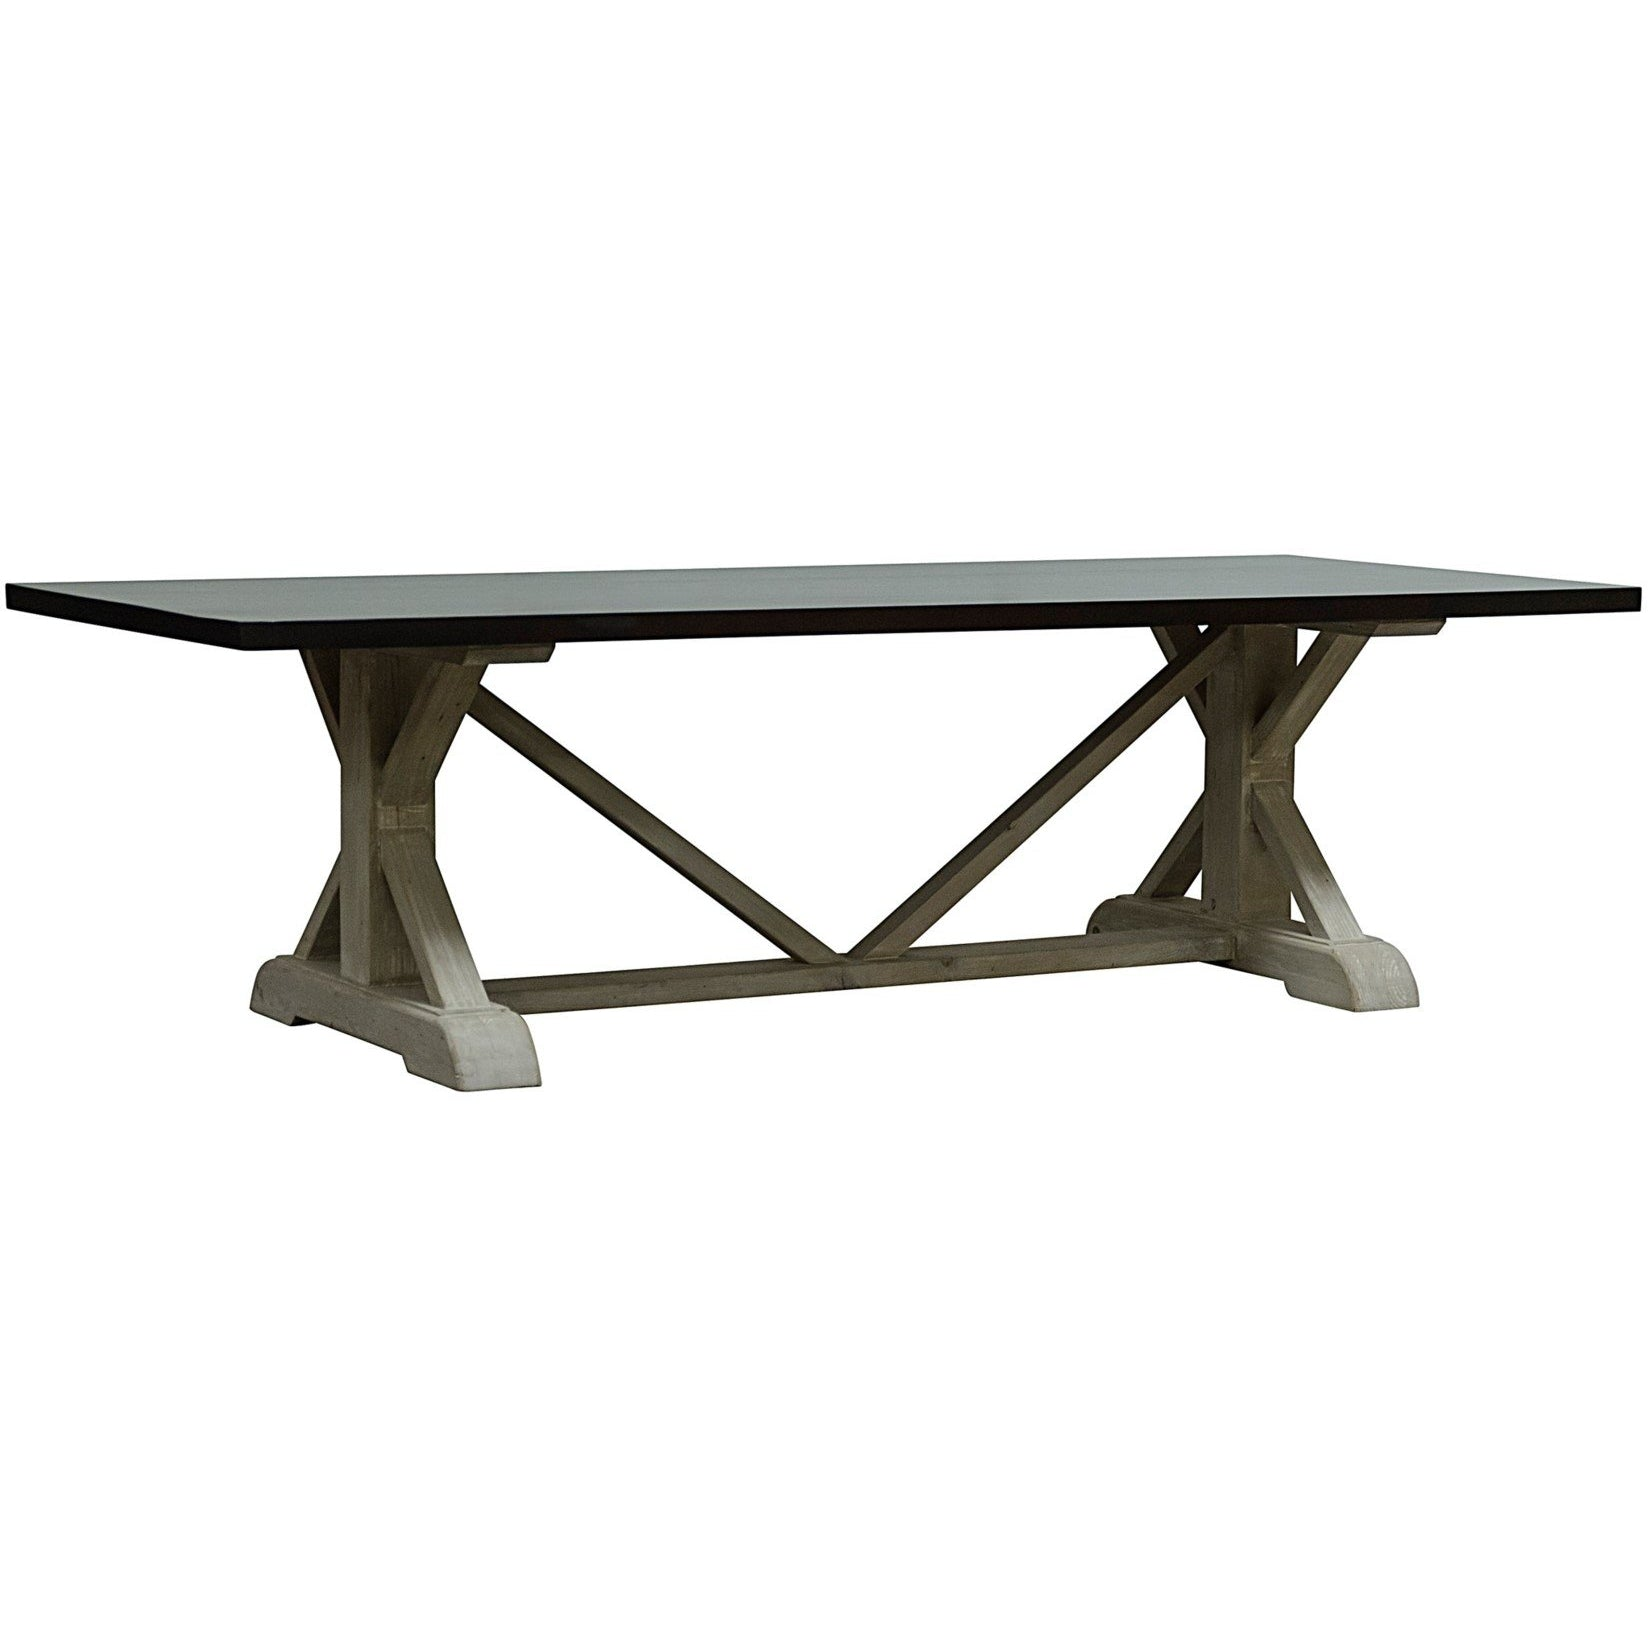 CFC Furniture Andreas Dining Table, 8 ft-CFC Furniture-Blue Hand Home